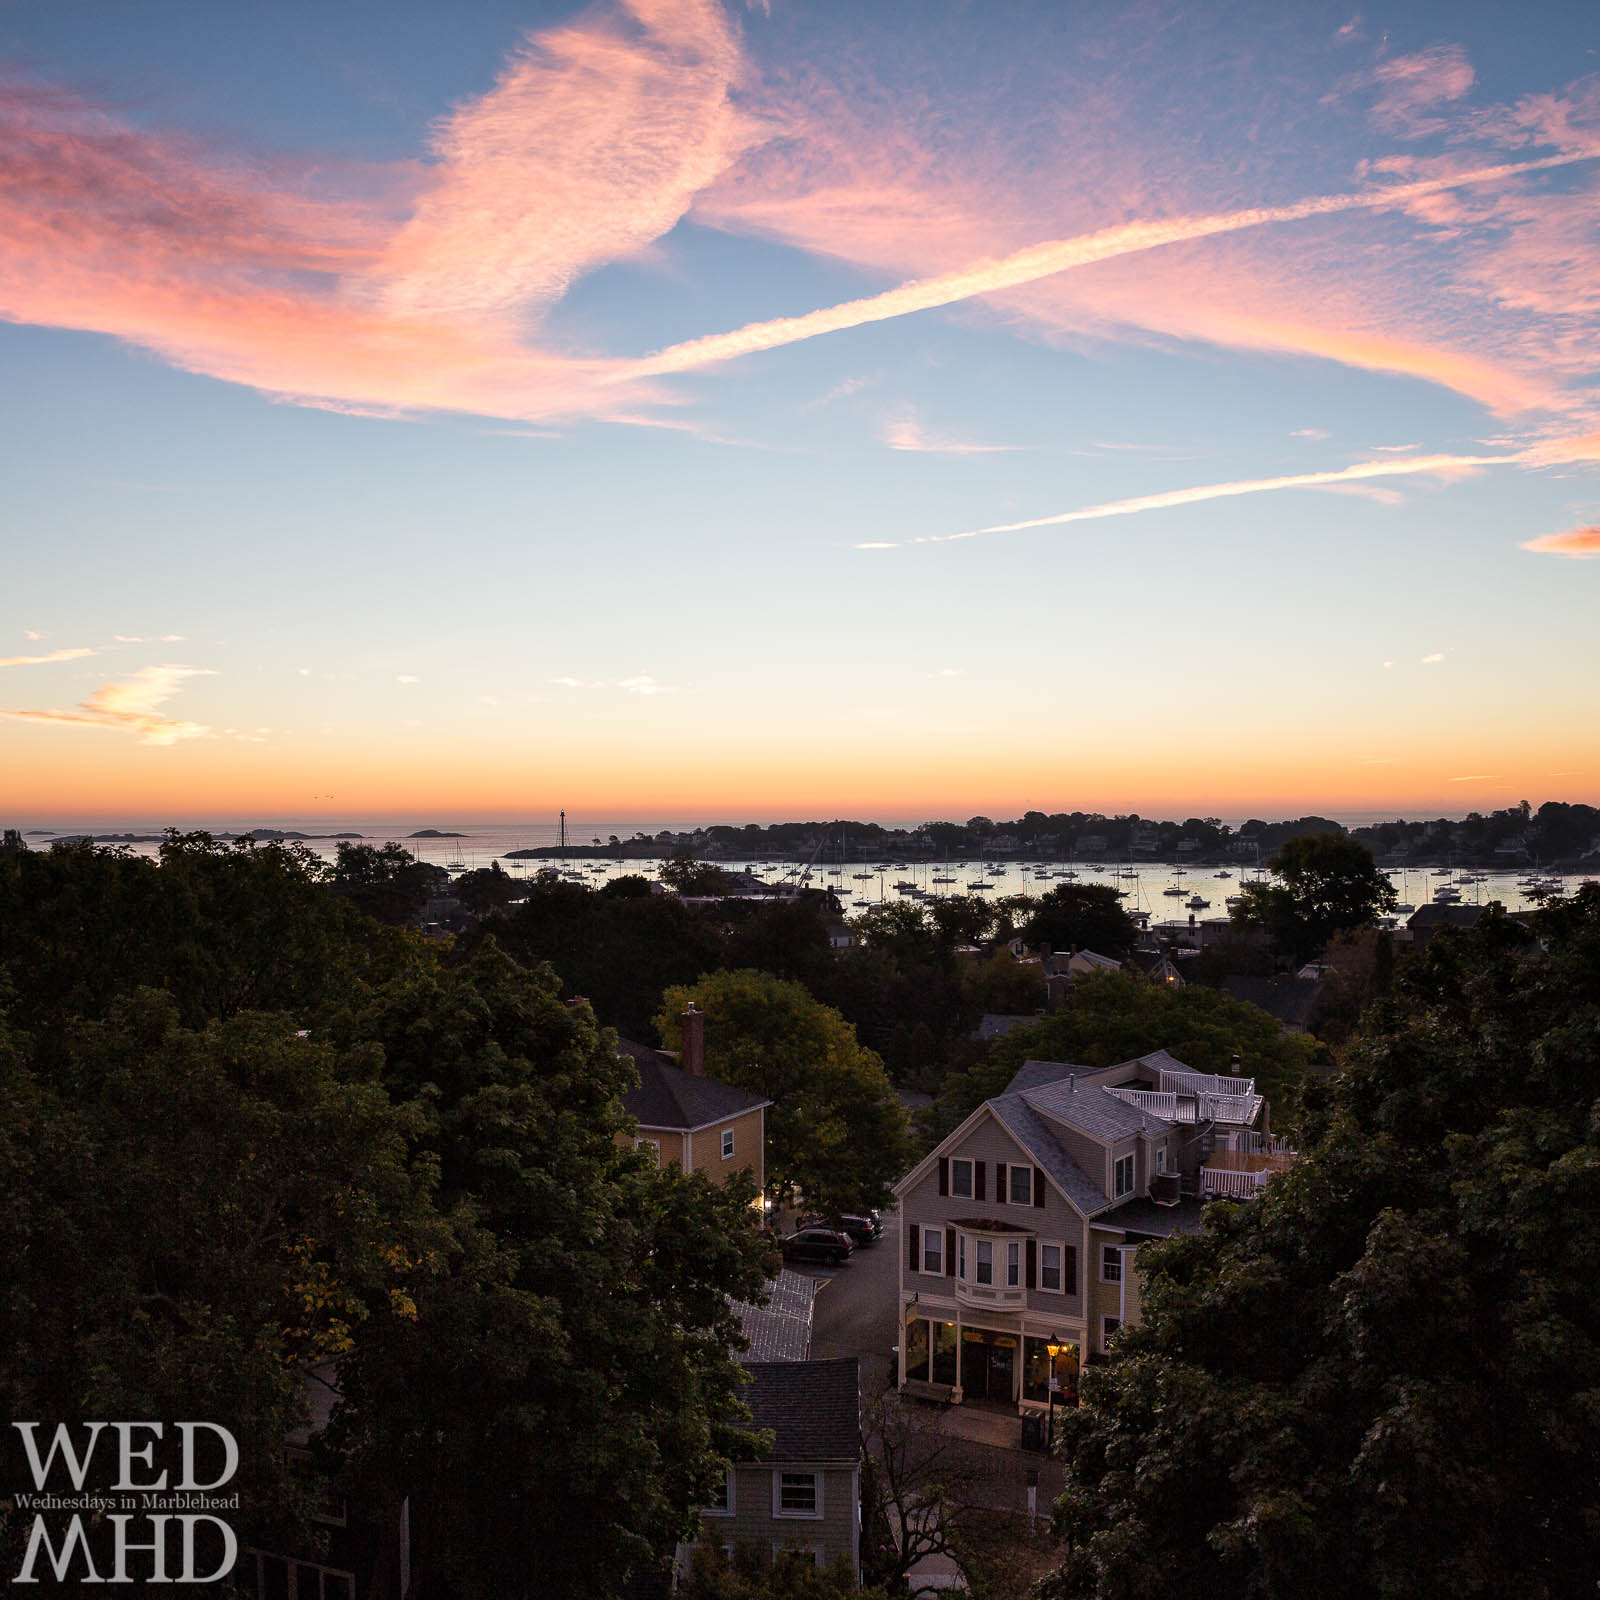 A rooftop view of the Muffin Shop at dawn with Marblehead harbor and its lighthouse in the distance